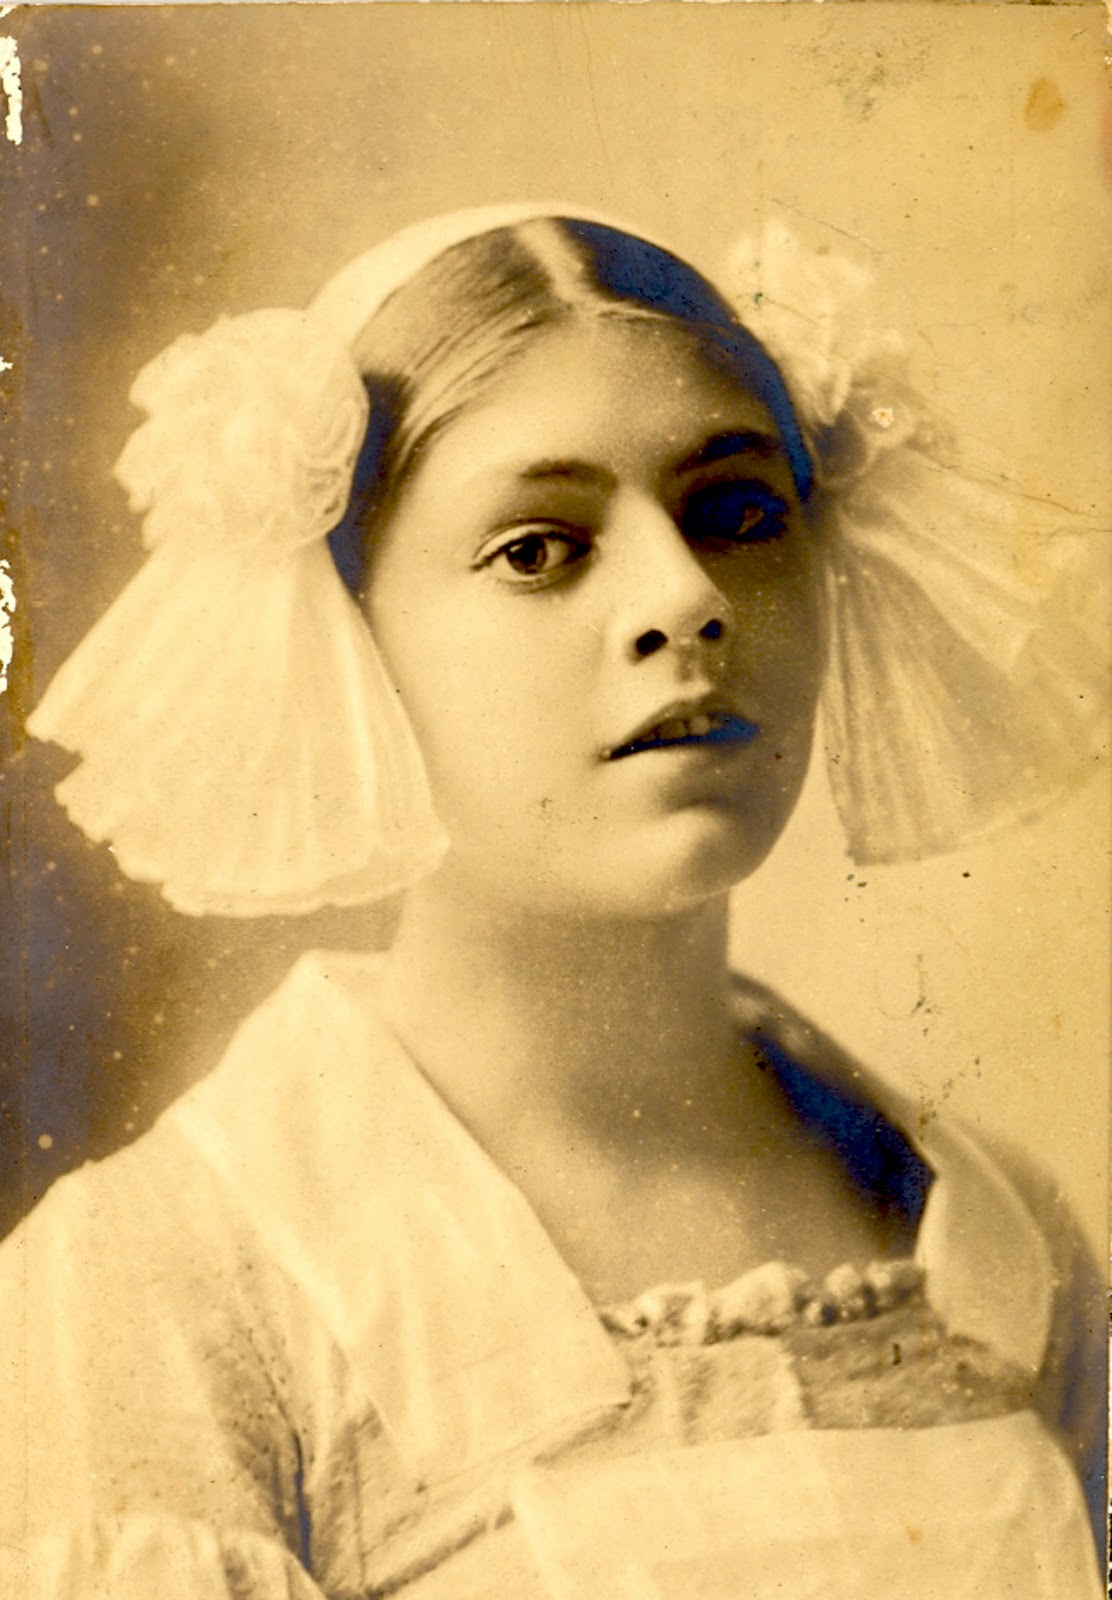 Ethel Barrymore Ethel Barrymore new pics